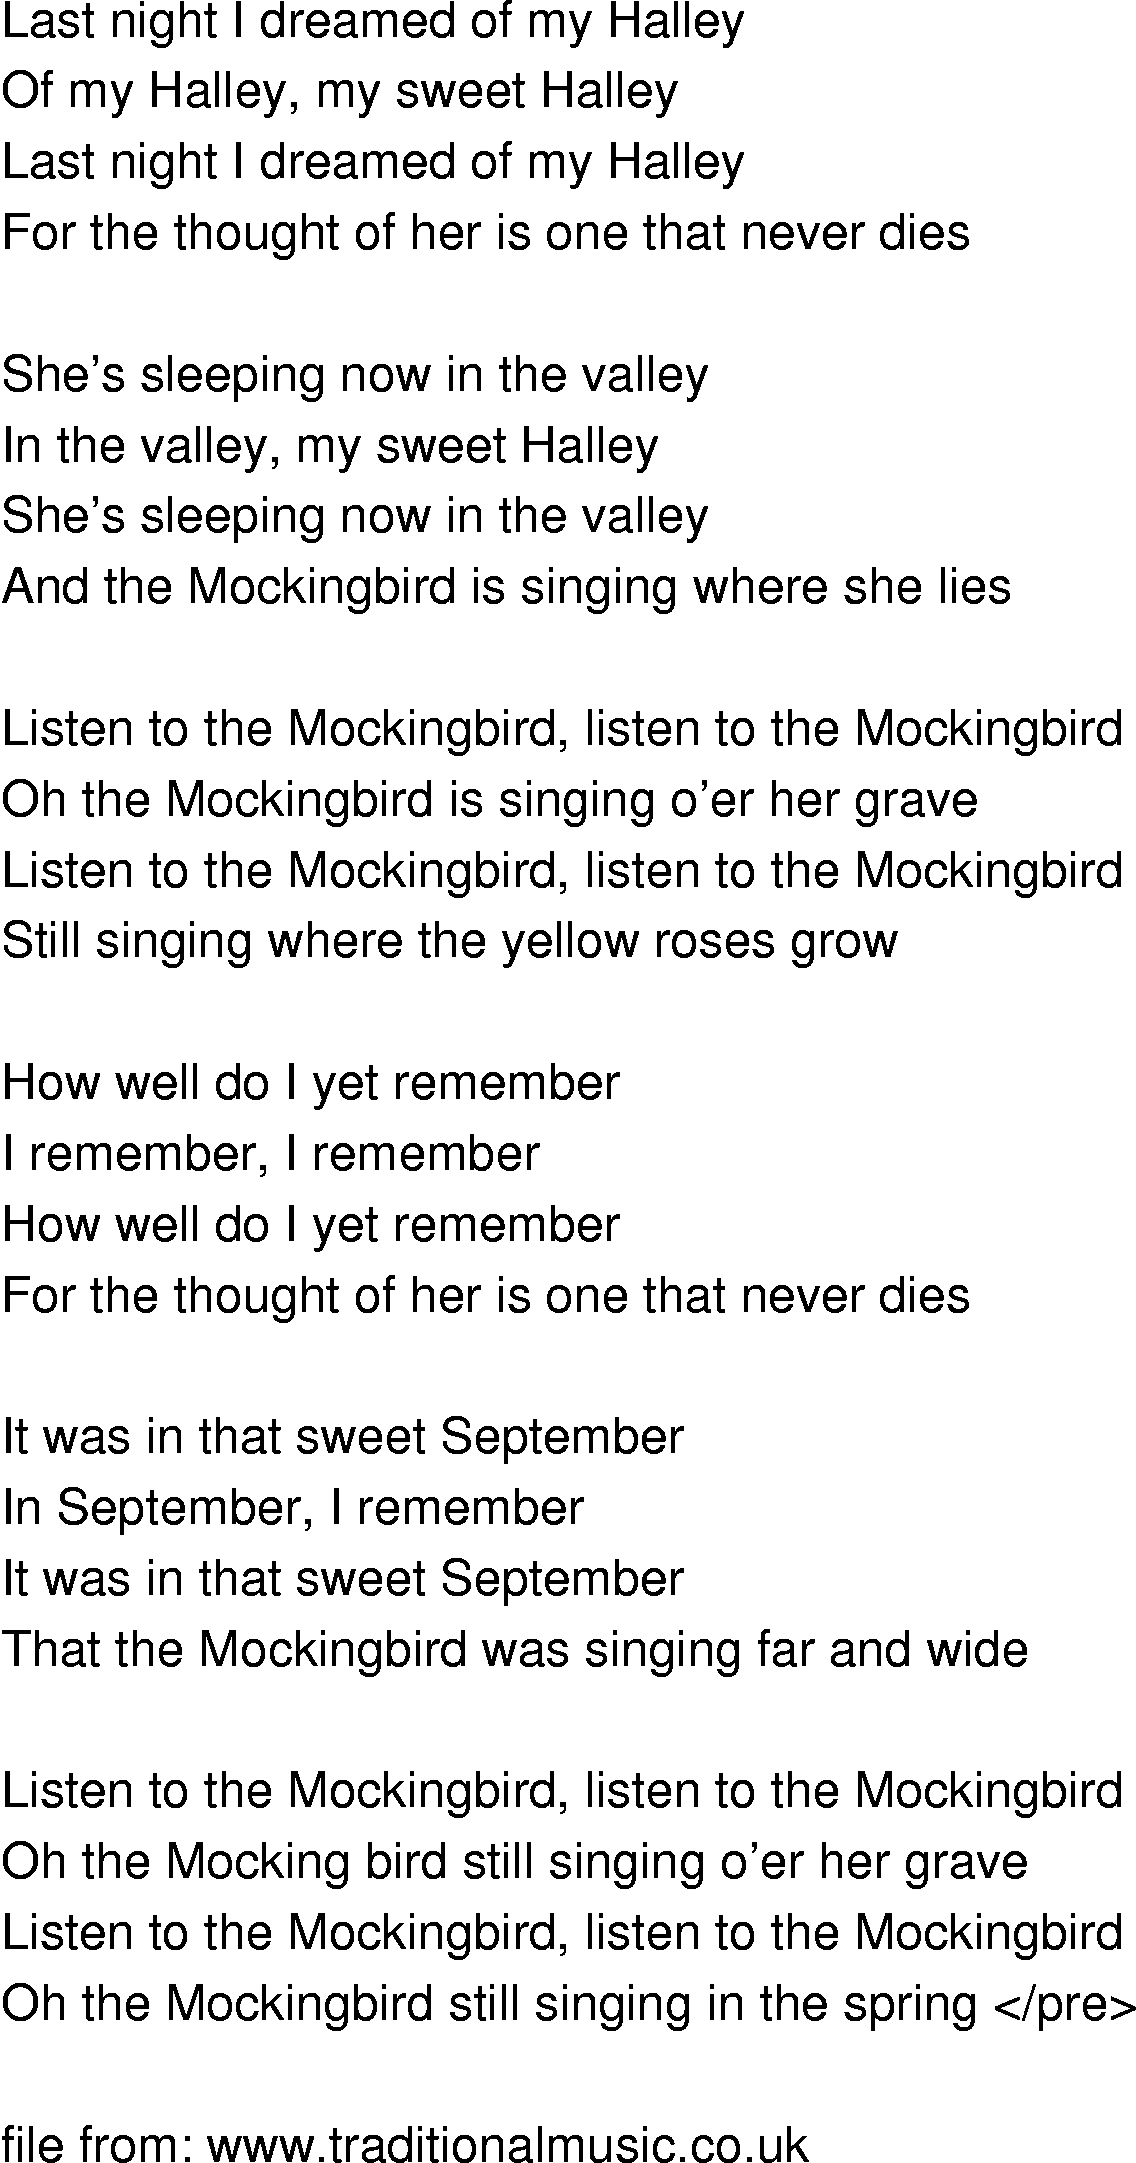 Old-Time Song Lyrics - Listen To The Mockingbird